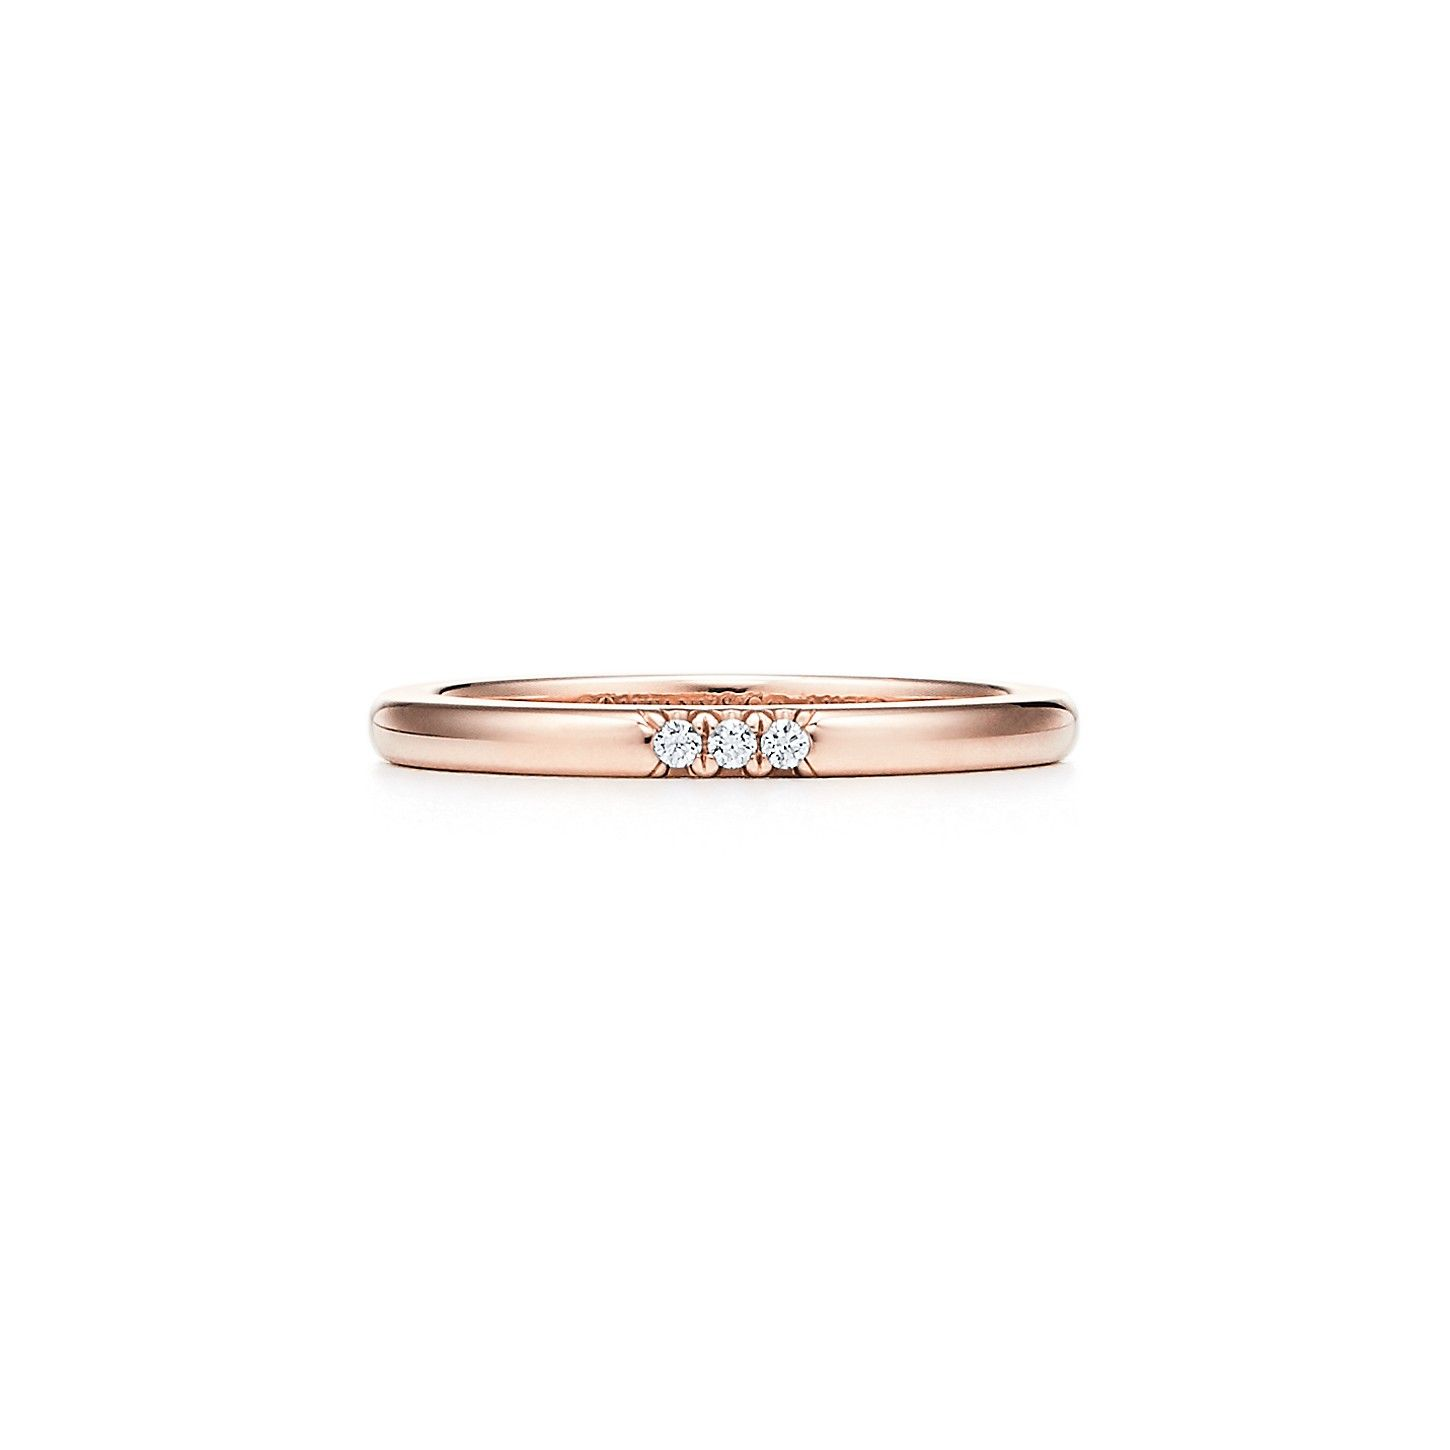 Tiffany Classic Wedding Band Ring In 18k Rose Gold With Diamonds 2 Mm Wide Tiffany Co Wedding Ring Bands Tiffany Wedding Band Wedding Bands